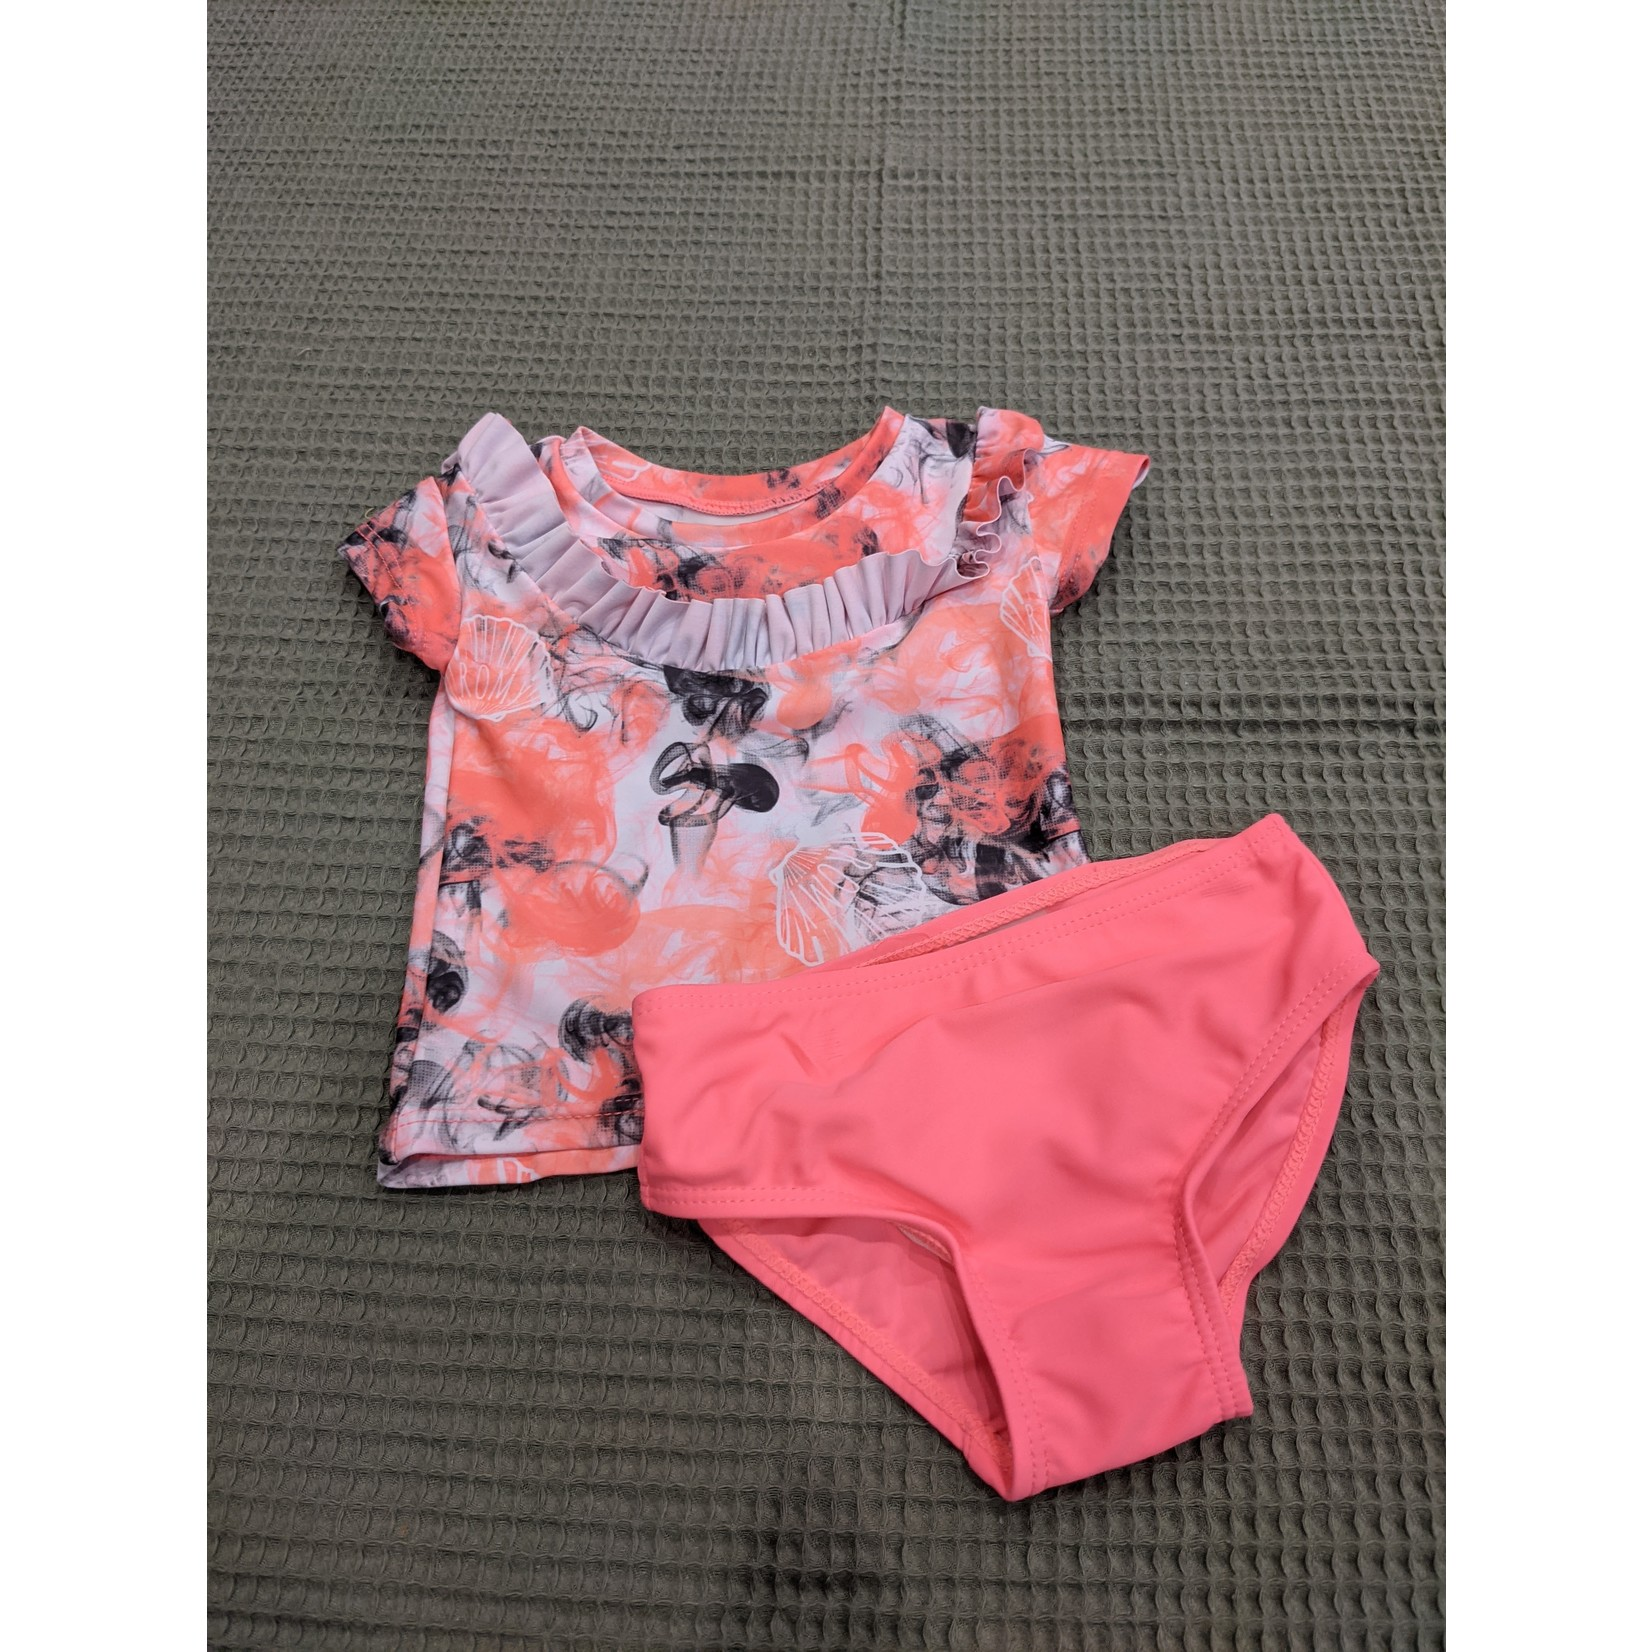 #91 Maillot 2 pièces rose fluo